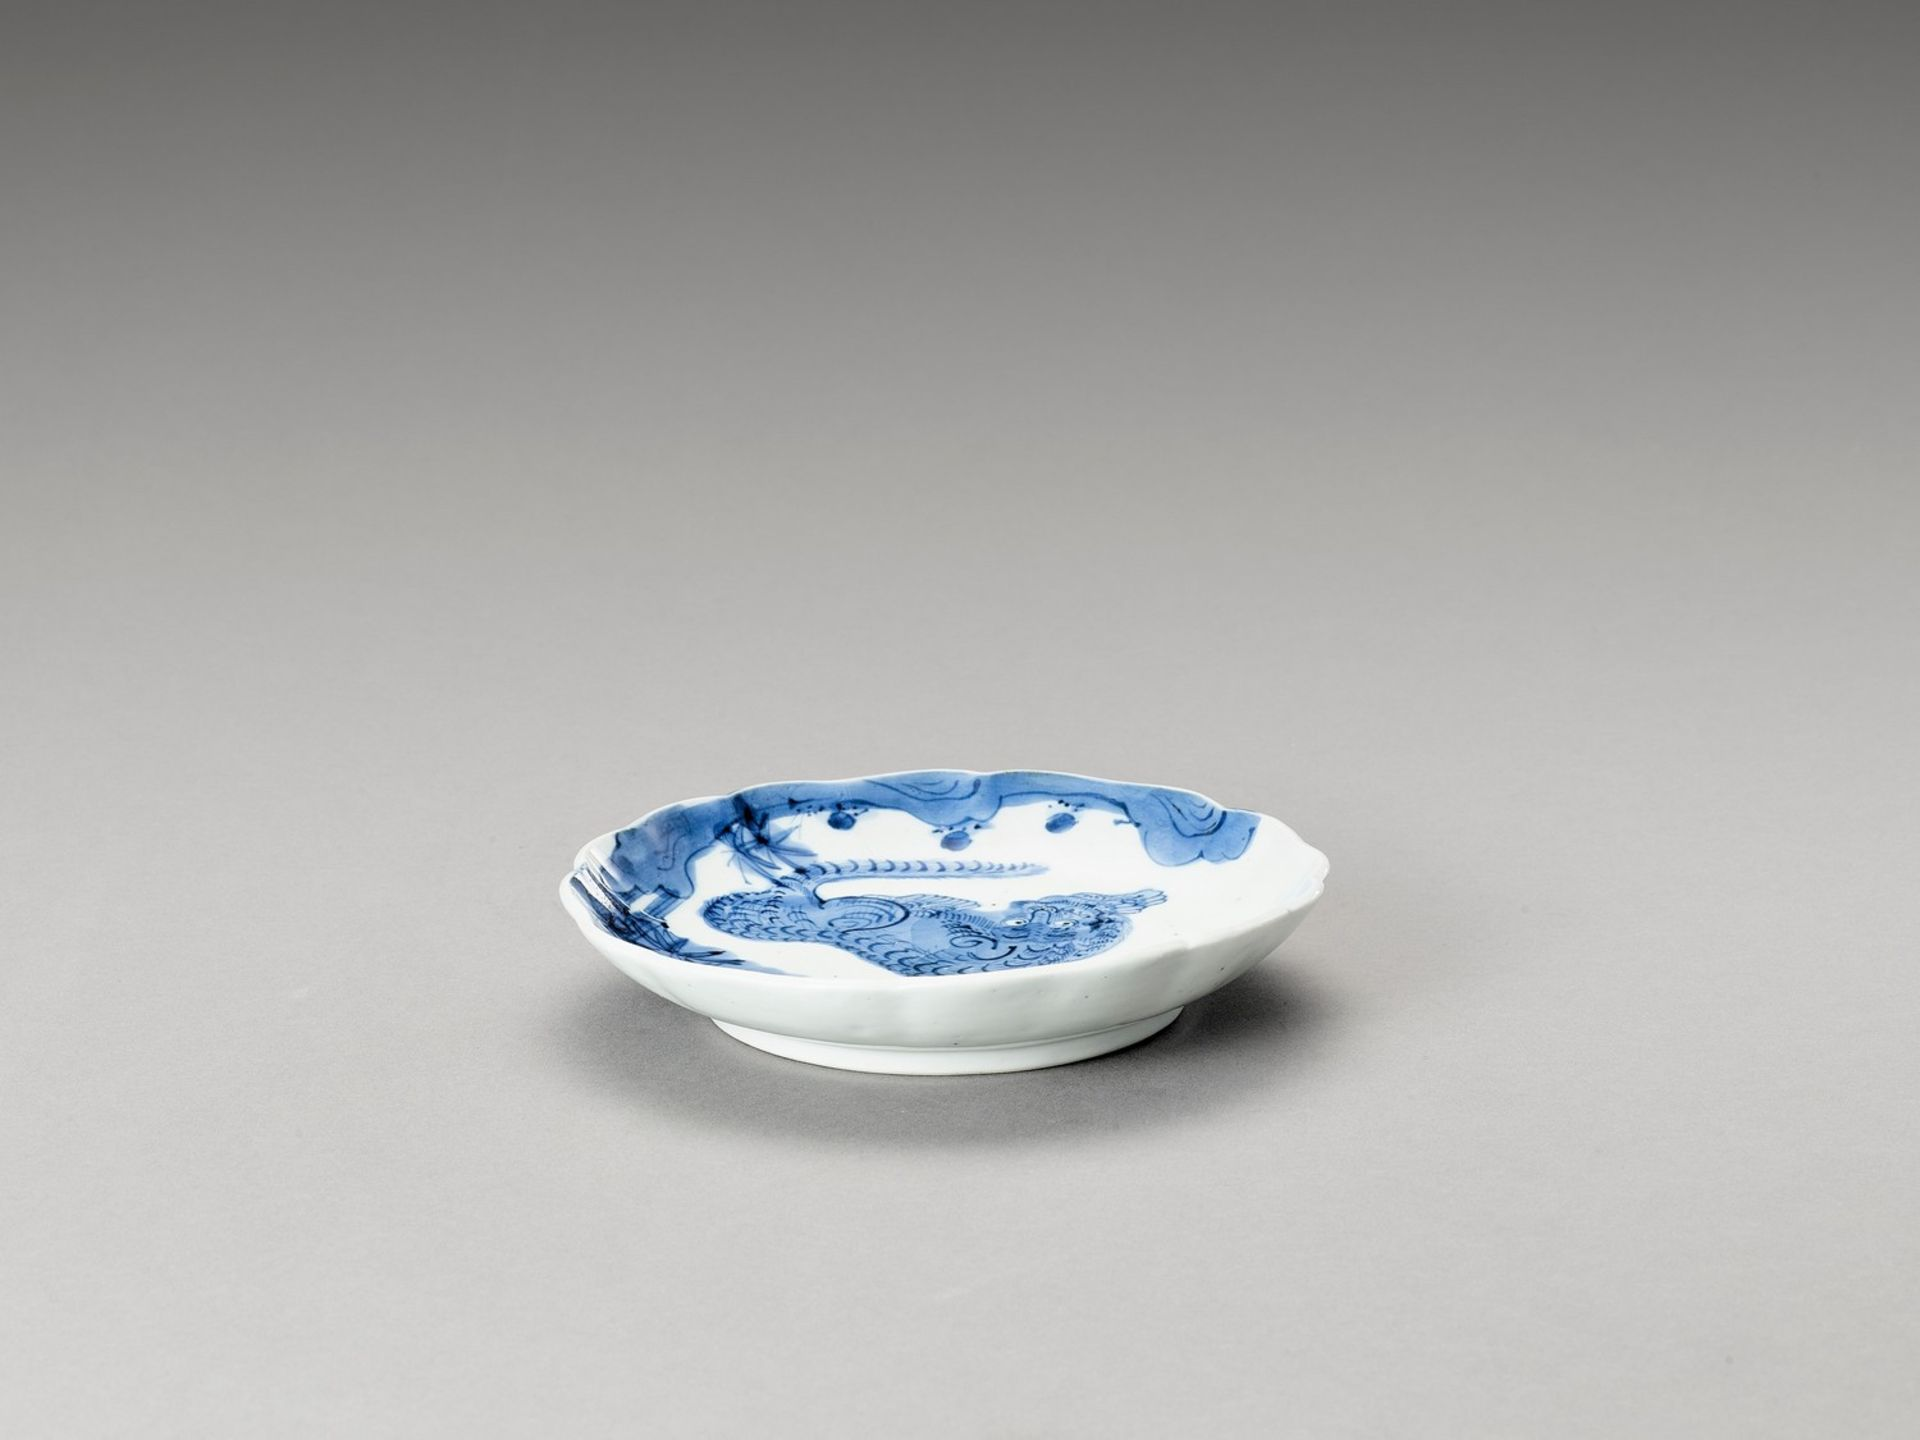 A BLUE AND WHITE LOBED PORCELAIN DISH WITH TIGER - Bild 4 aus 4